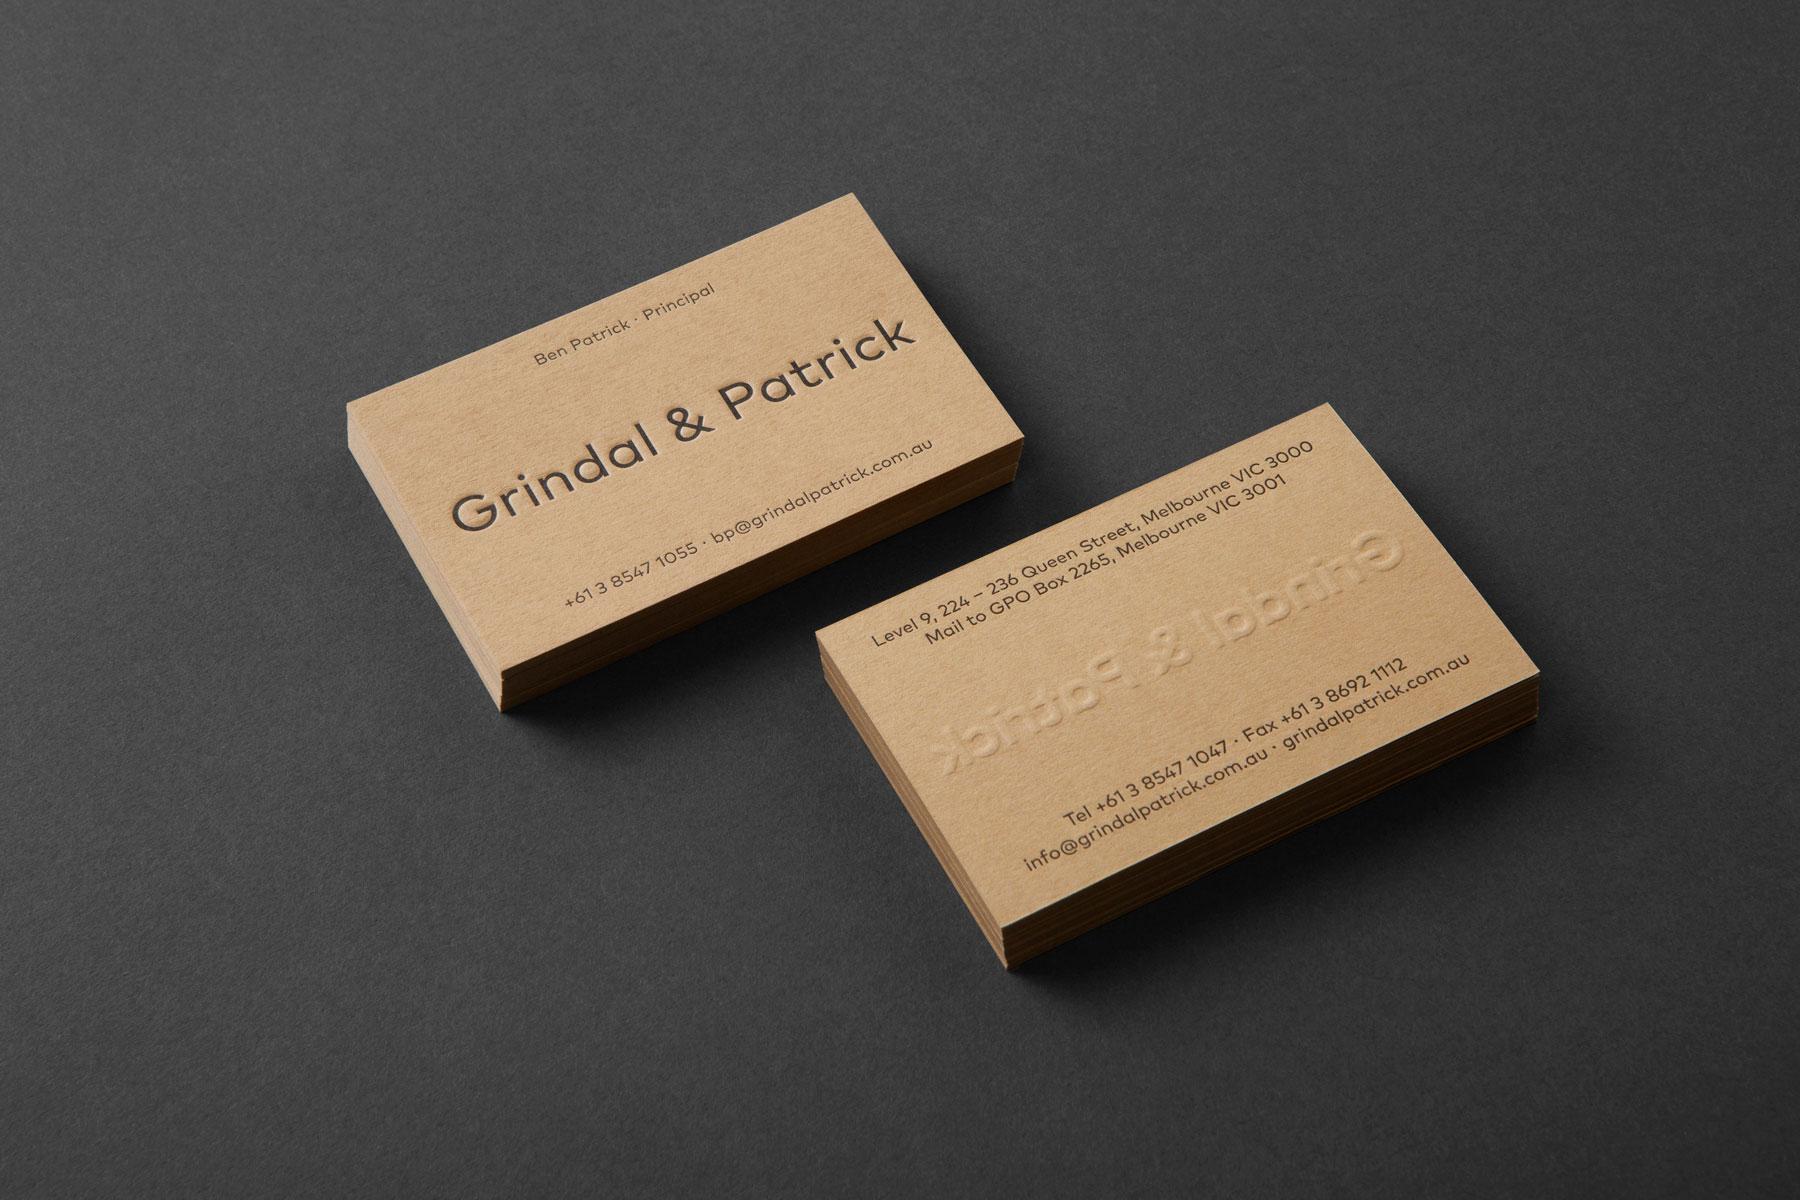 Custom Letterpress Business Cards for Grindal & Patrick on Colorplan 1